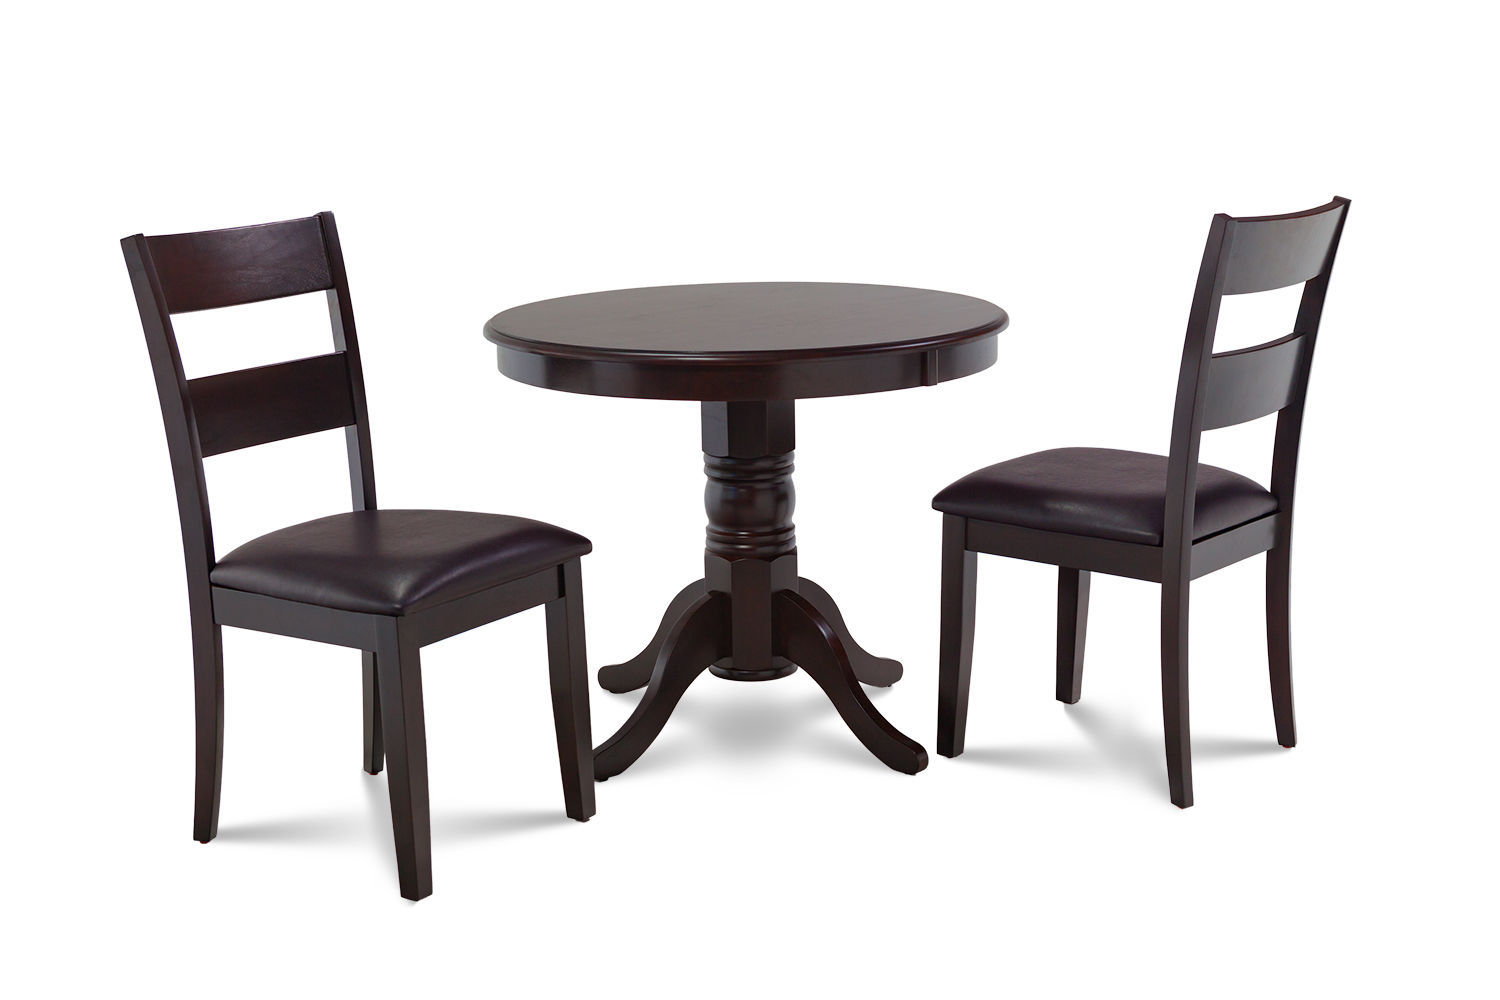 3 PIECE ROUND DINETTE KITCHEN TABLE DINING SET LEATHER SEAT CHAIRS IN CAPPUCCINO